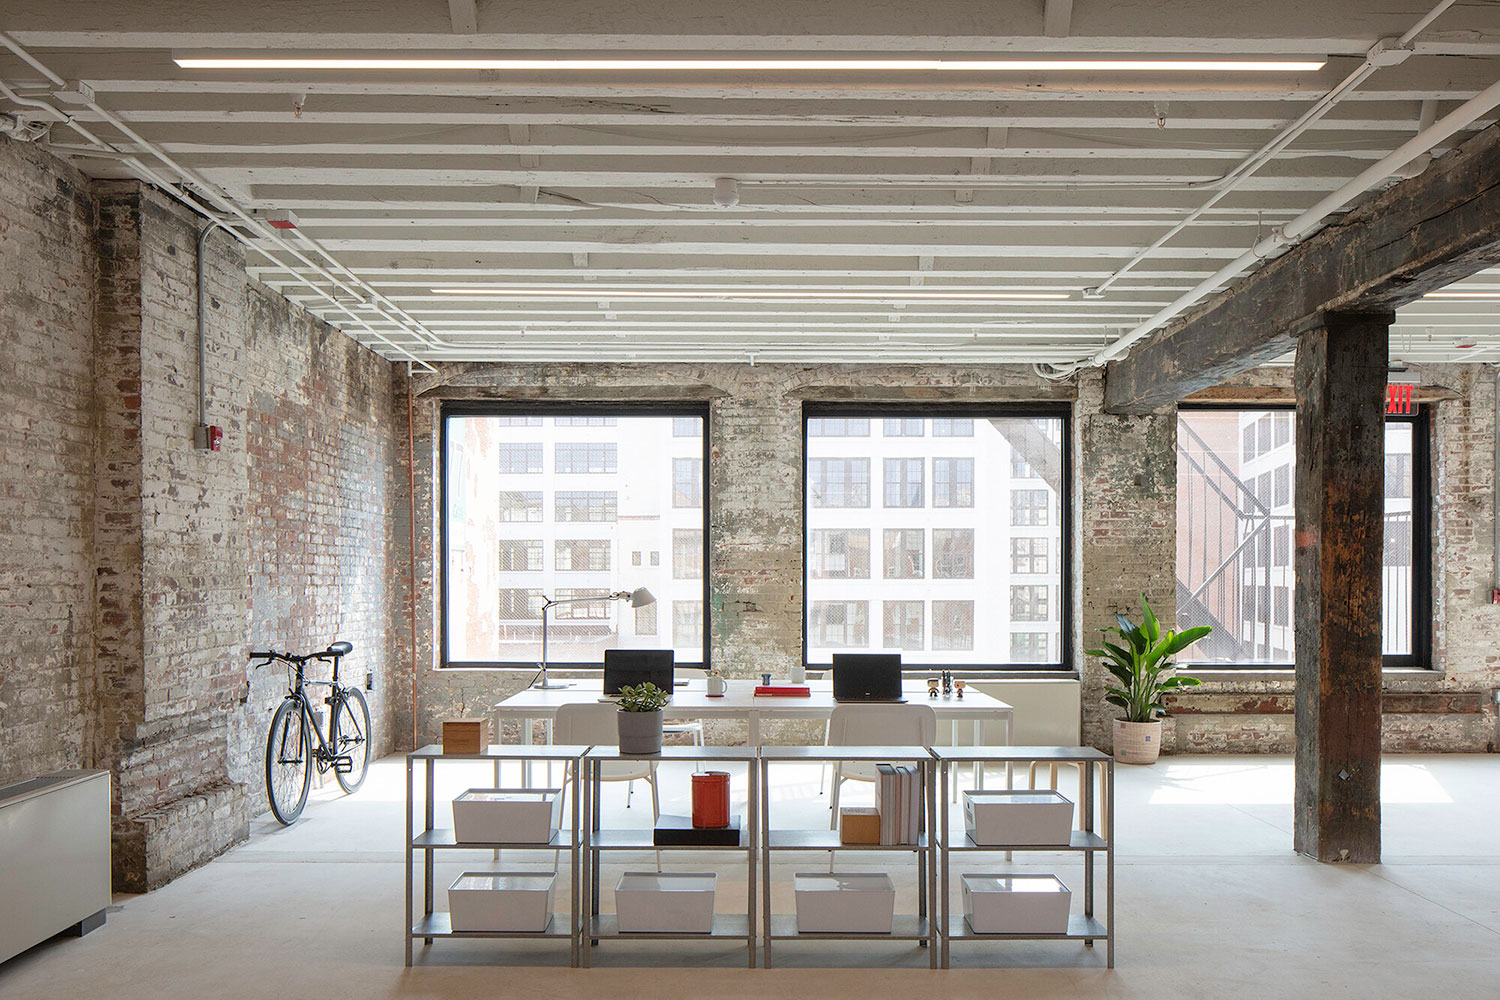 A photograph of an interior office space at 77 Washington Avenue